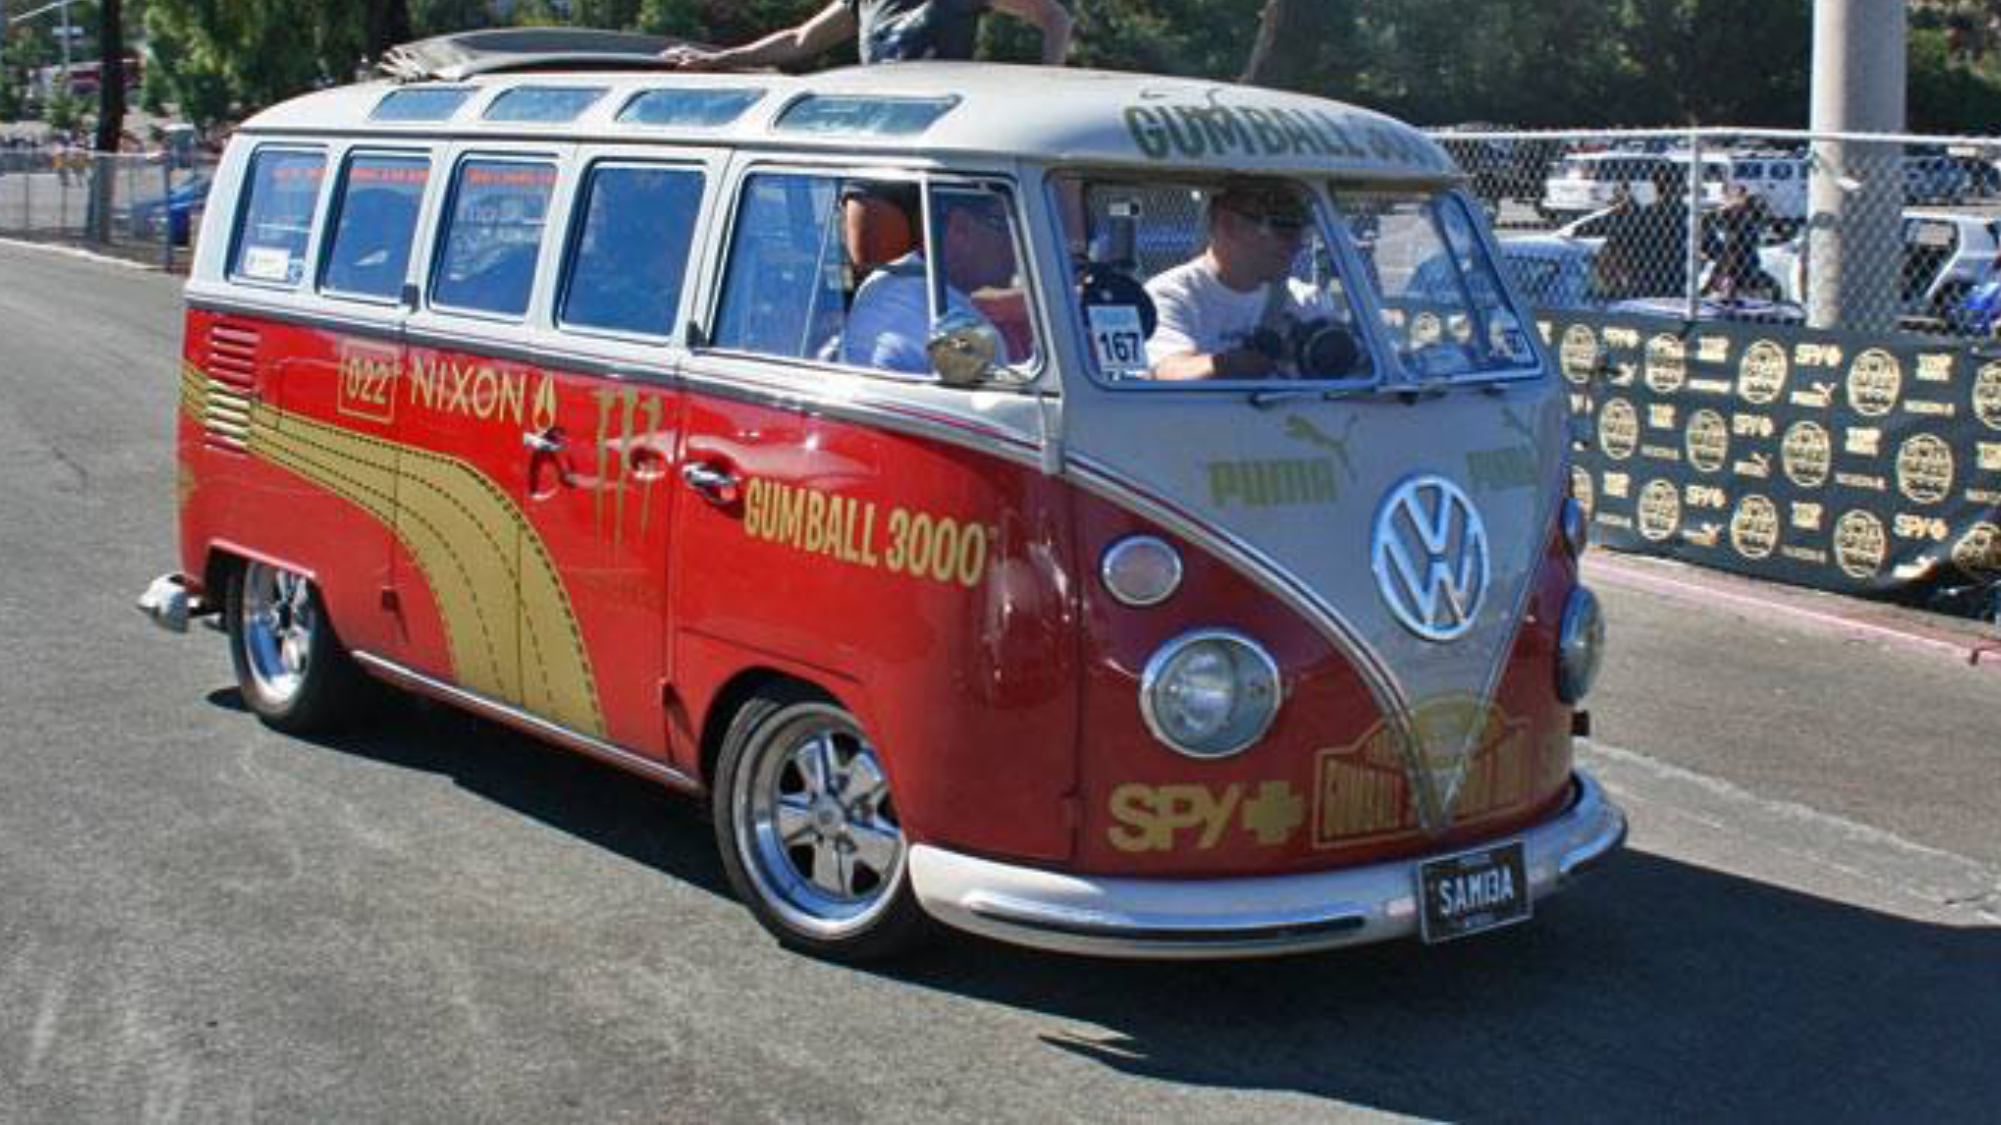 more vw sucesso on camper pin coolest ideias henriquemmt by and this volkswagen bus pinterest cars find